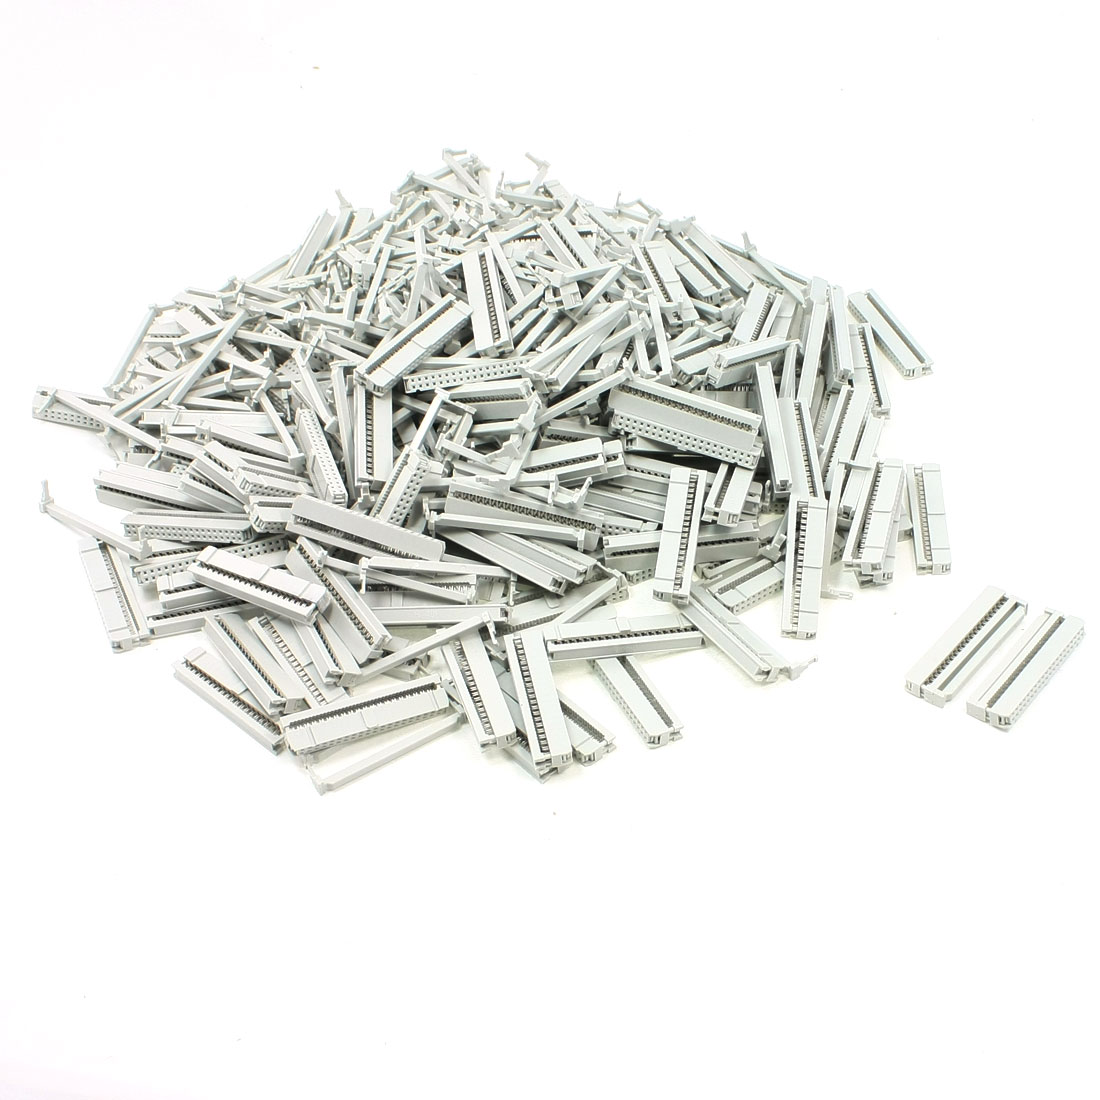 200 Pcs 2 Rows 40 Pin IDC Socket Connector Female Header 2.2mm FC-40P Light Gray